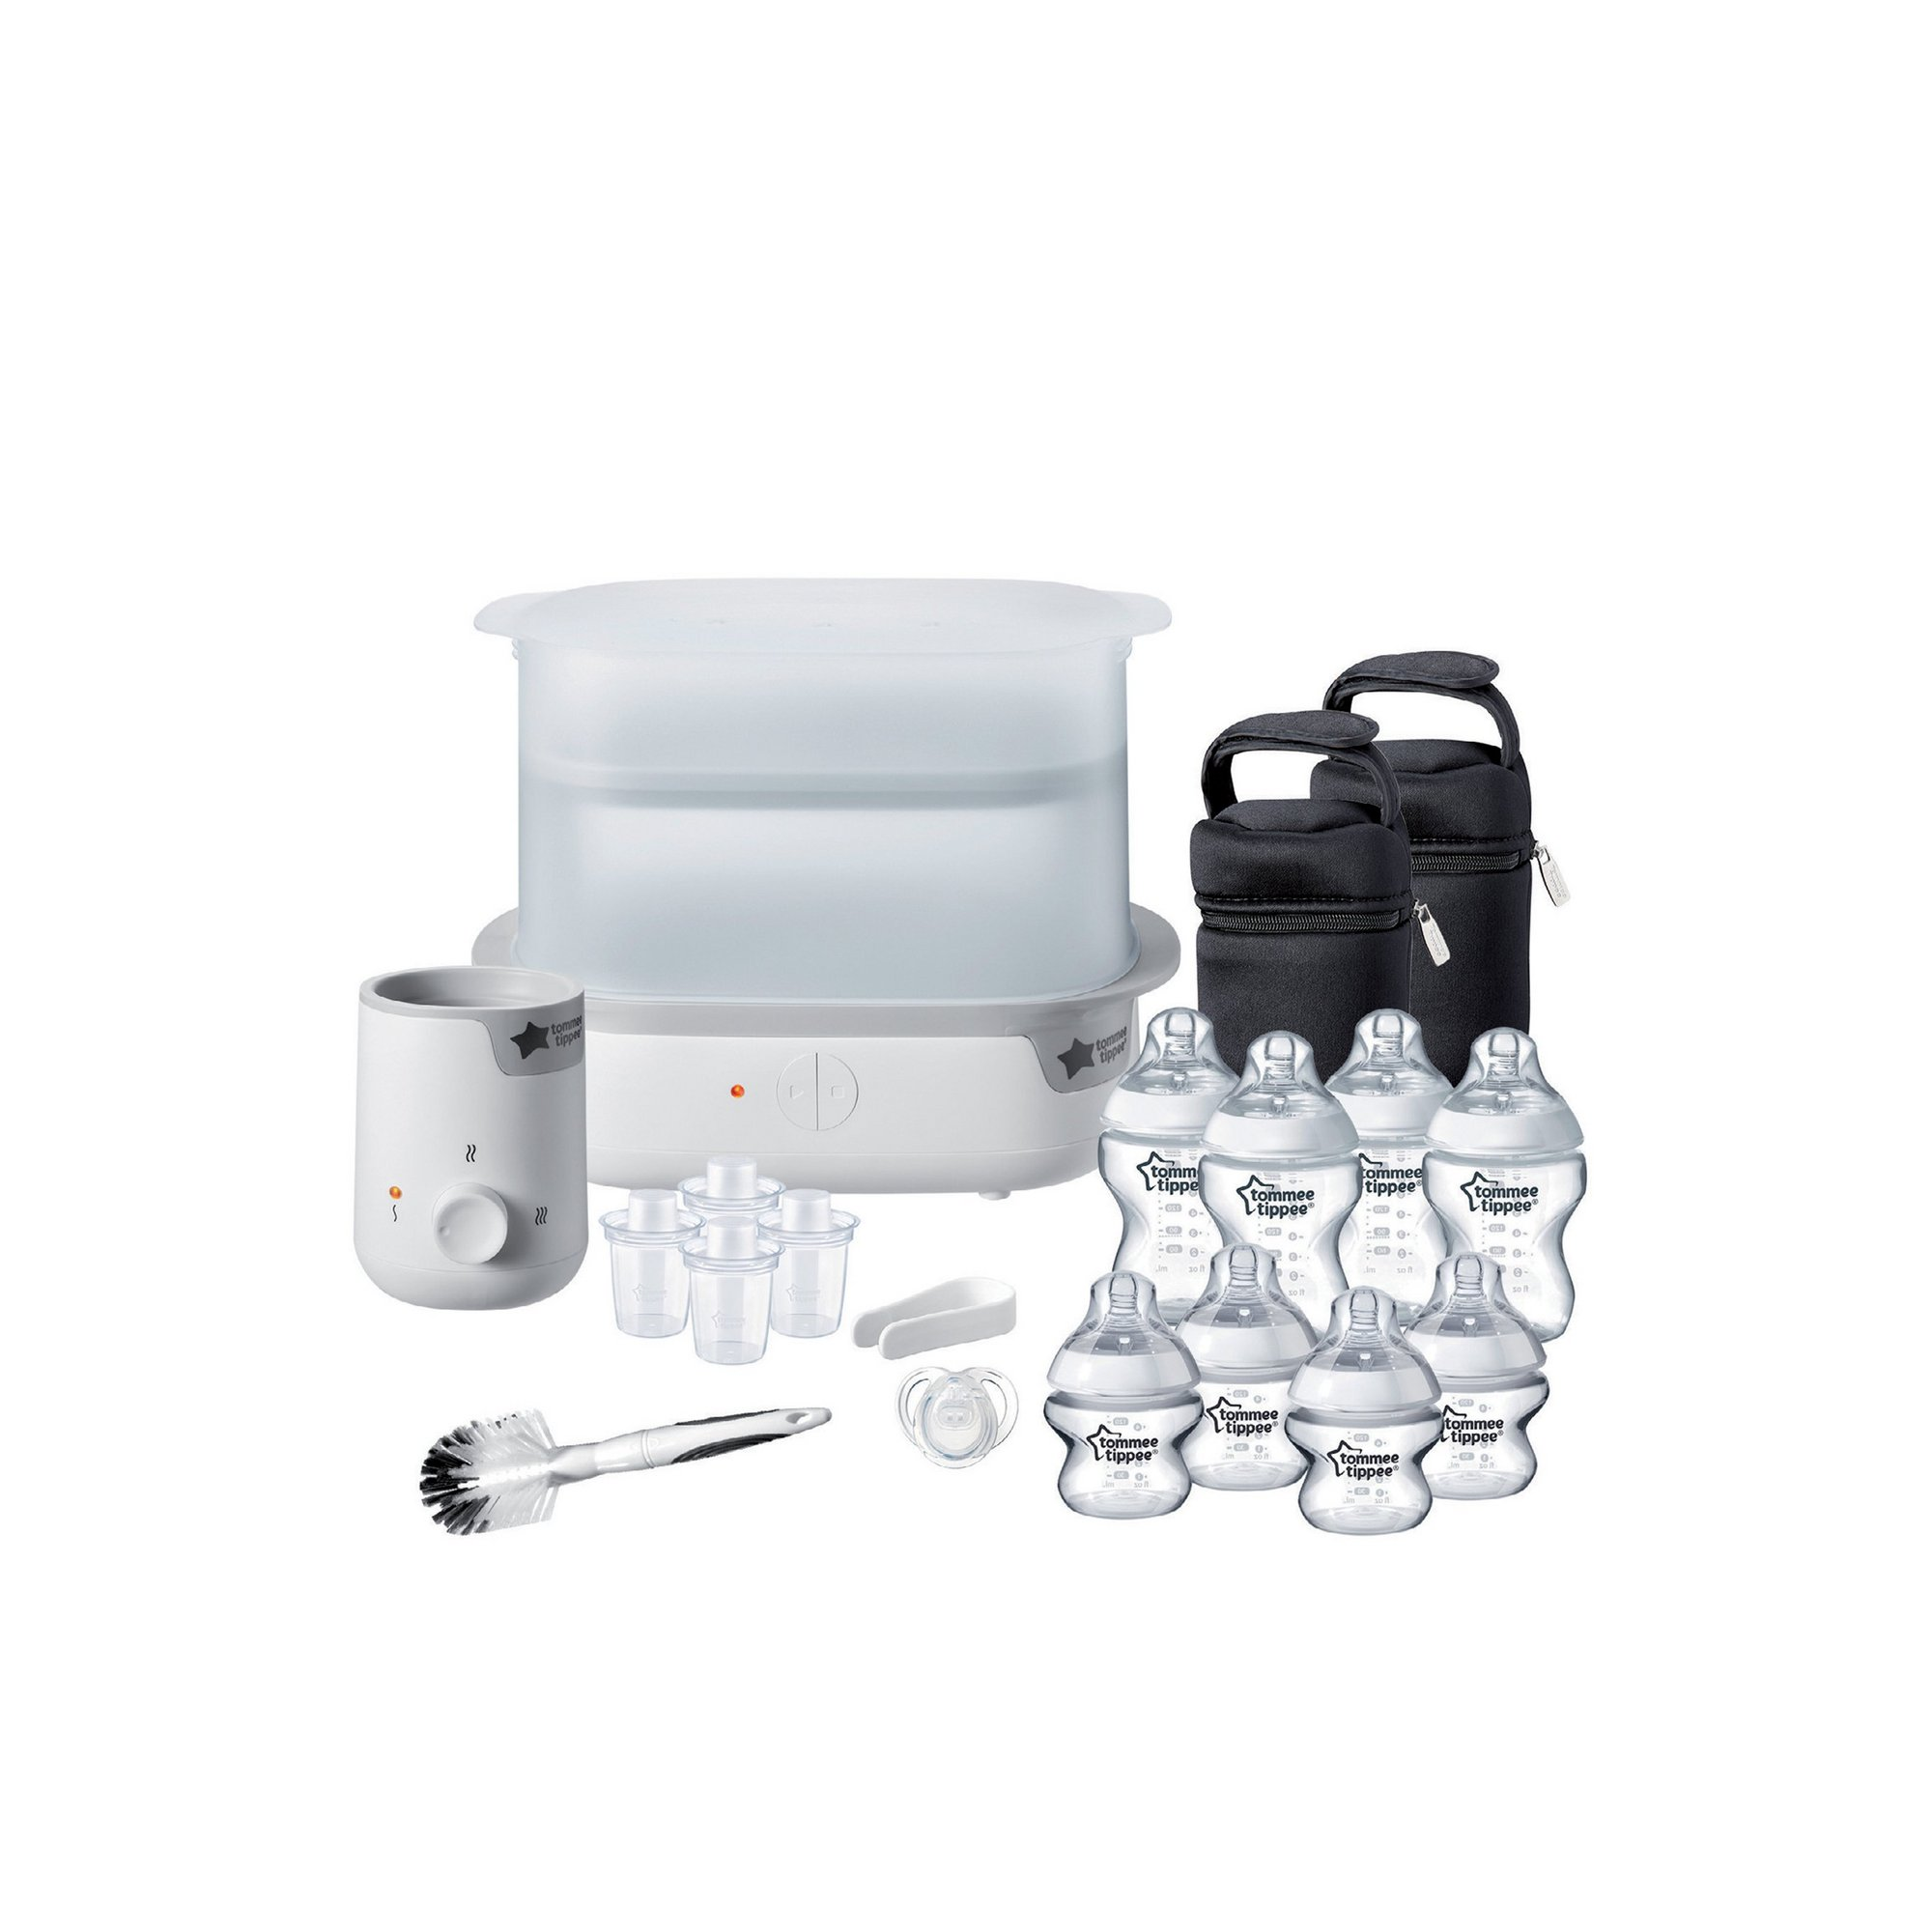 Image of Tommee Tippee Complete Feeding Kit